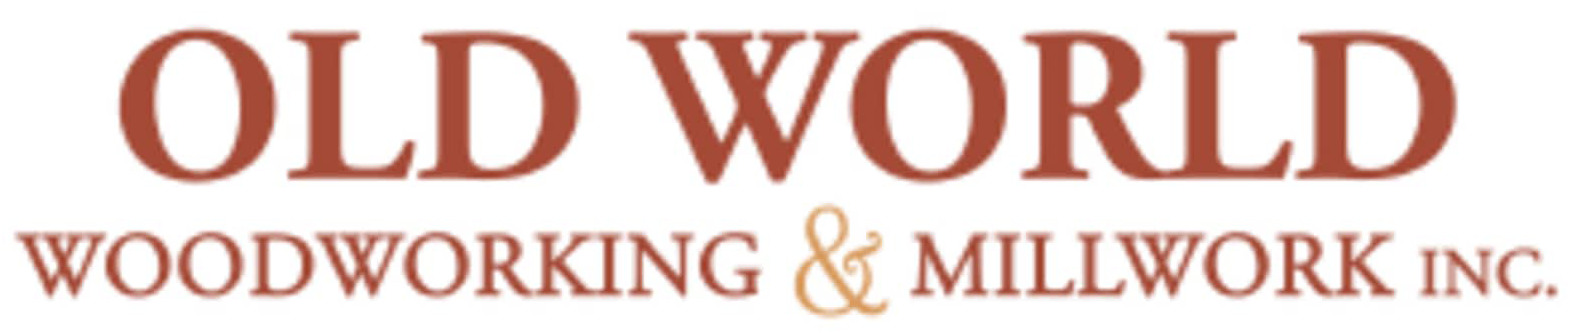 Old World Woodworking Millwork Inc.png